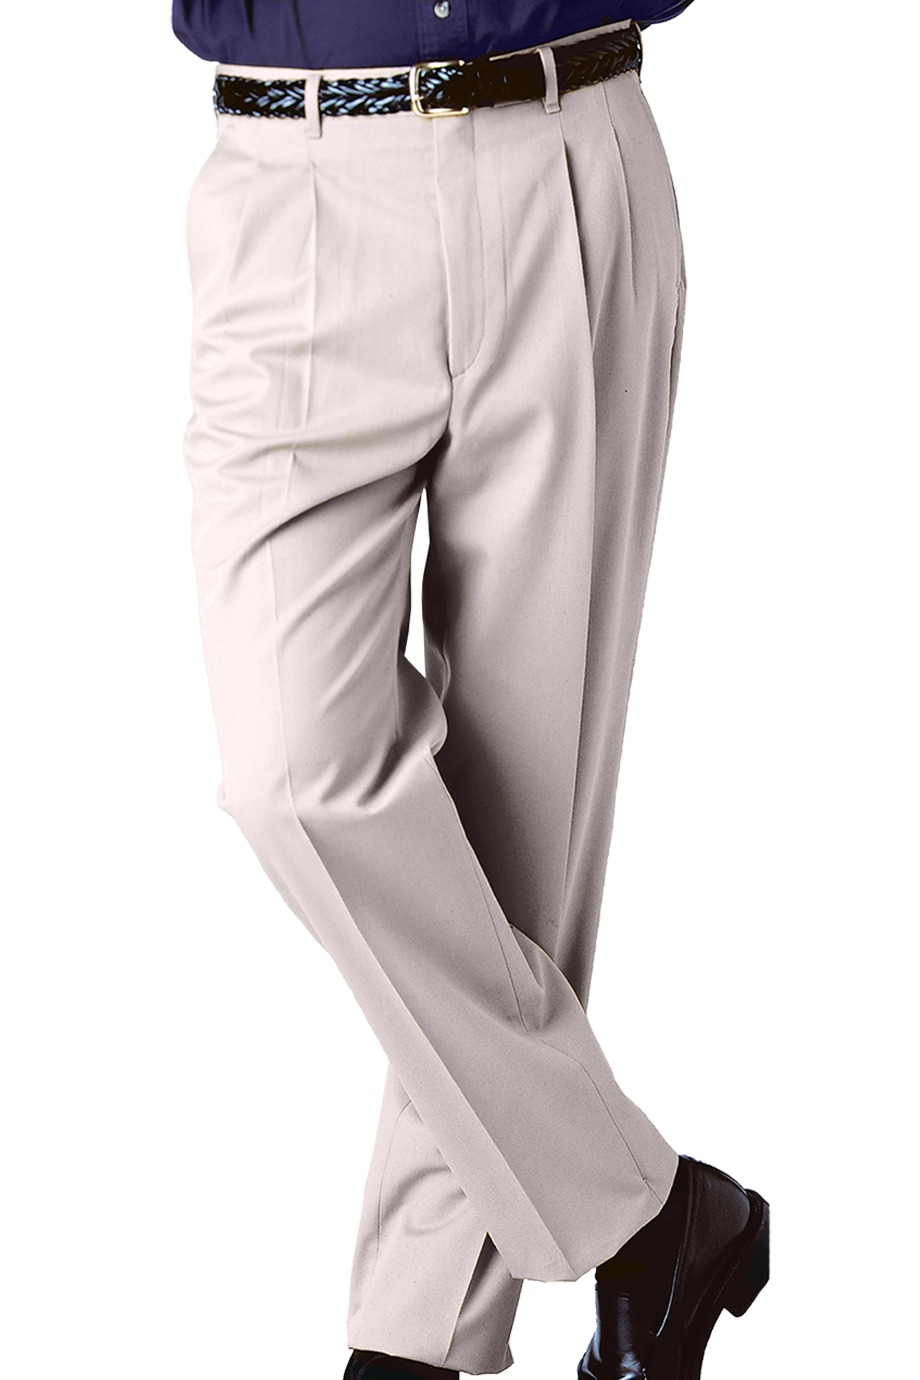 Edwards Garment 2610 - Men's Business Casual Pleated Pant